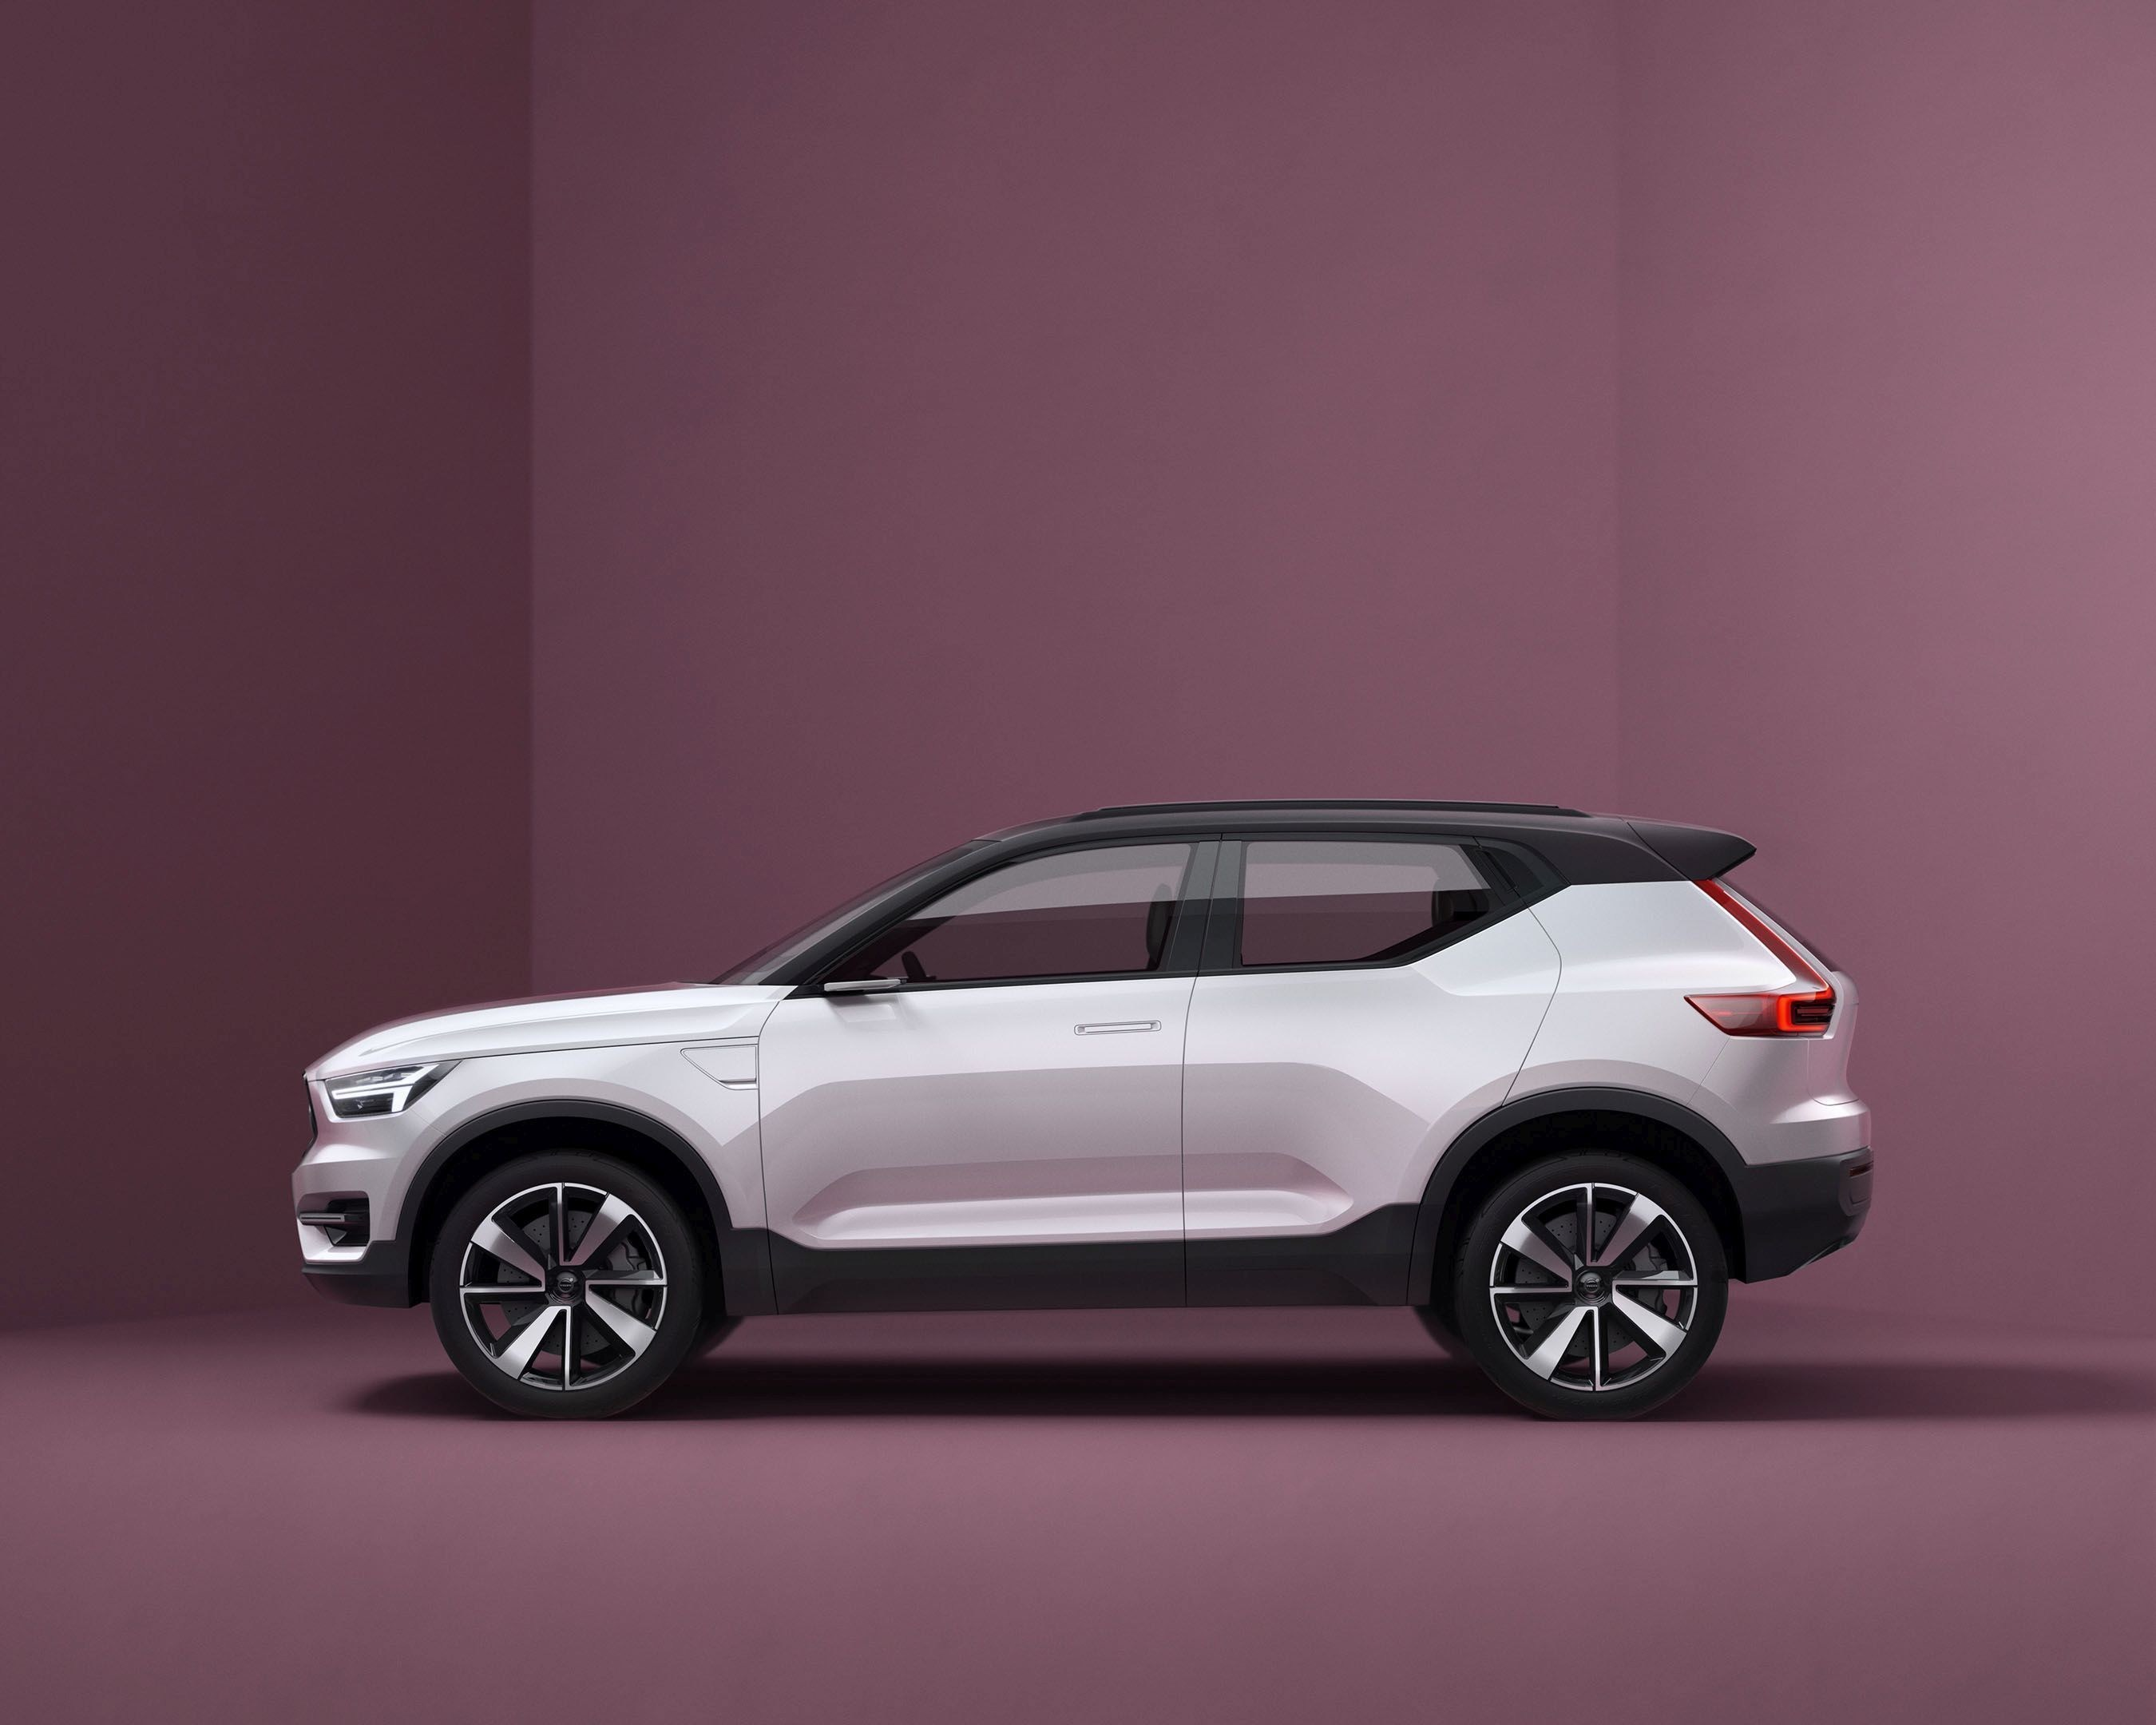 Volvo Cars Provides the First Look at its New Range of Smaller Cars